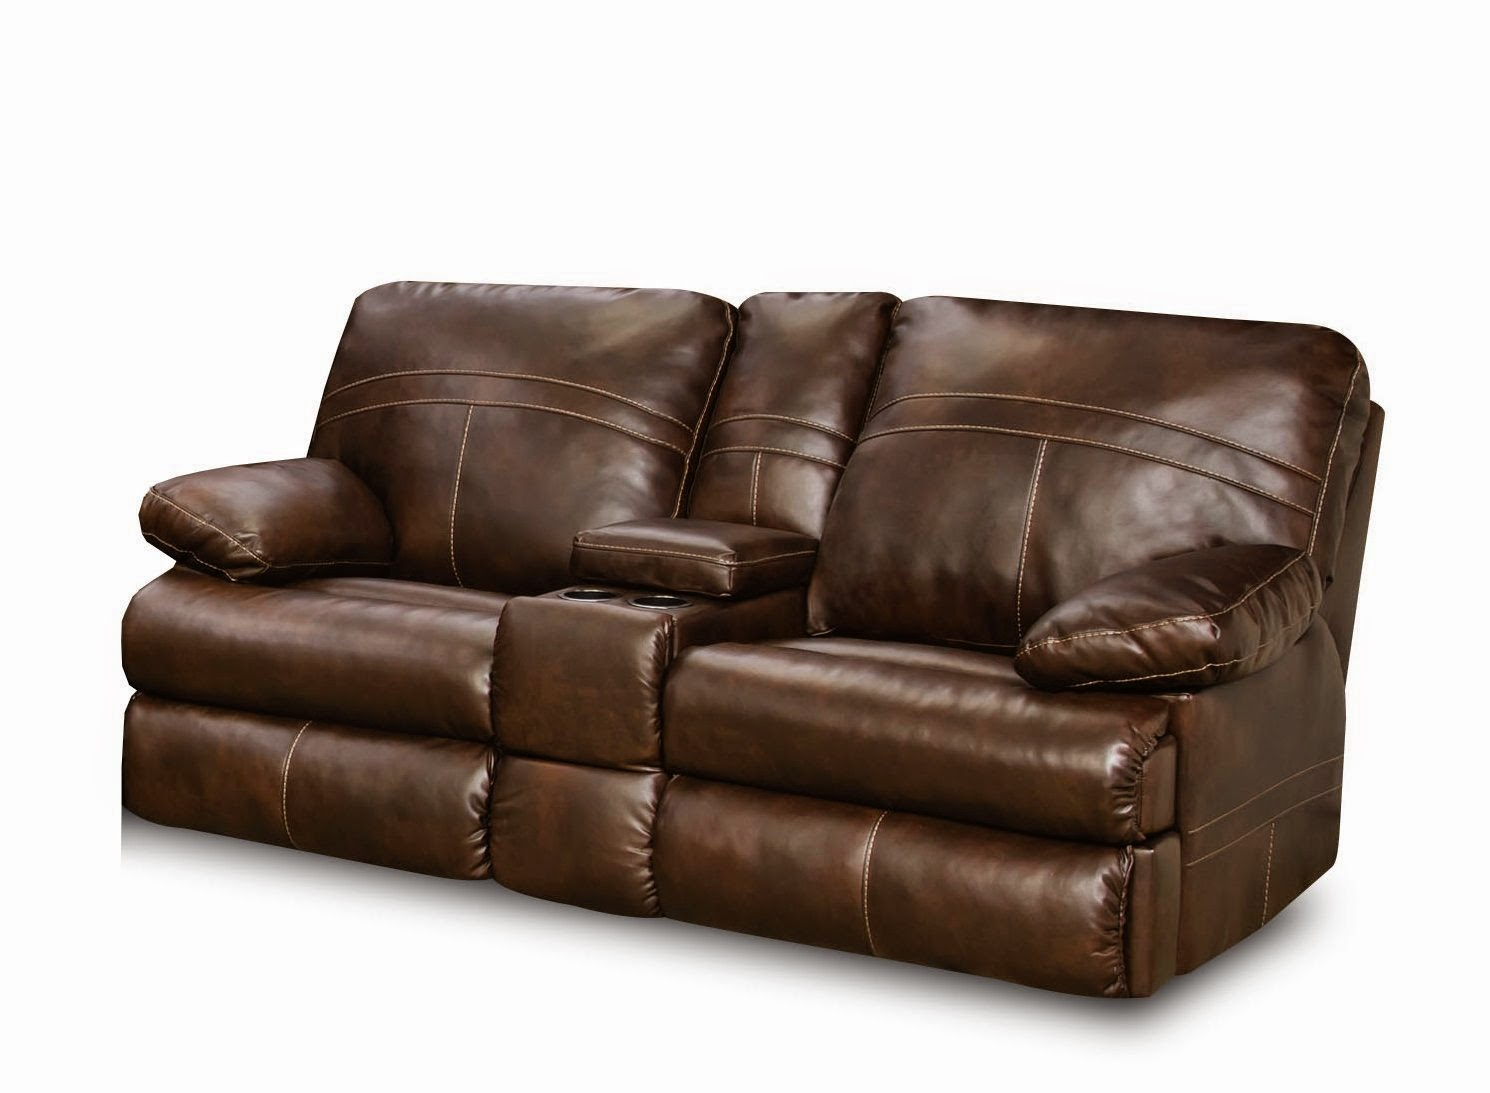 The best reclining leather sofa reviews simmons leather reclining sofa and loveseat Leather sofa and loveseat recliner